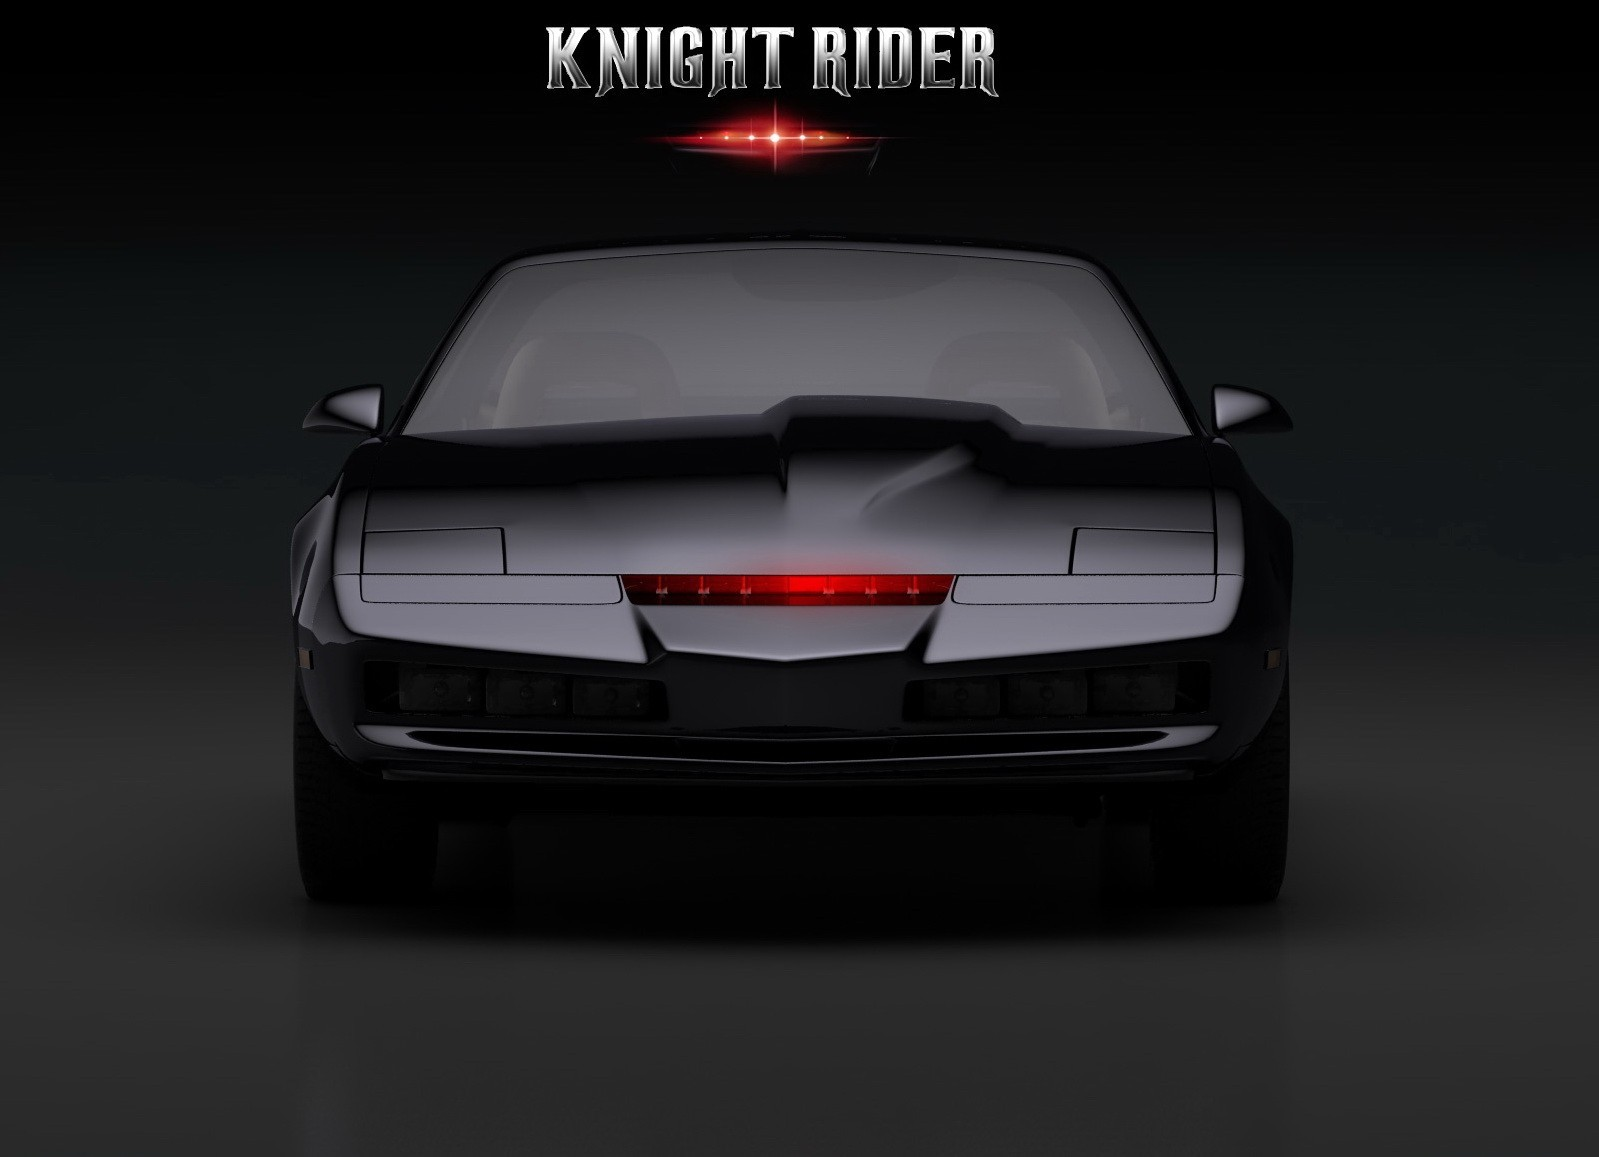 Night Rider Car Wallpapers Pontiac Simple Background Knight Rider K I T T Tv